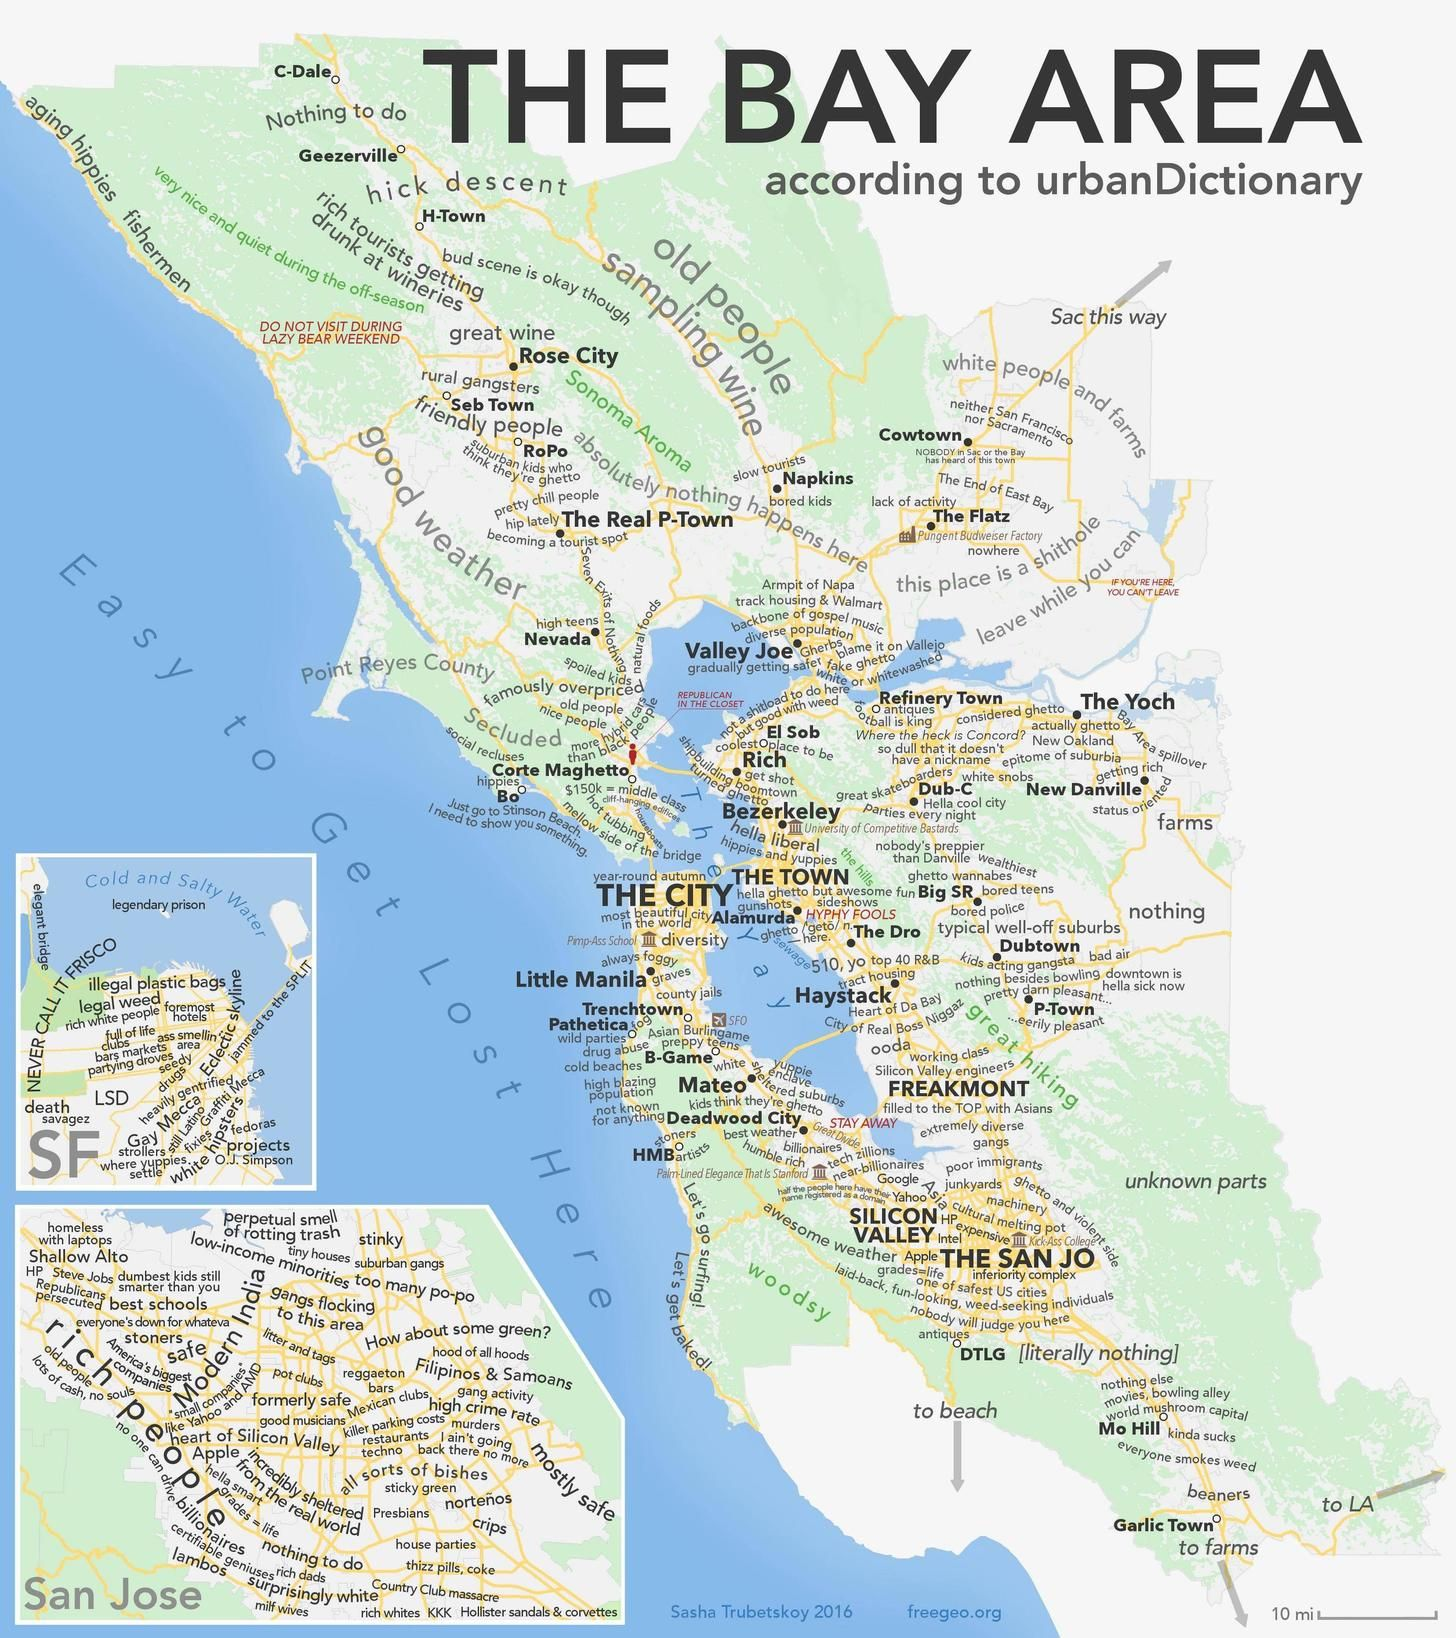 As promised the Bay Area according to Urban Dictionary [OC